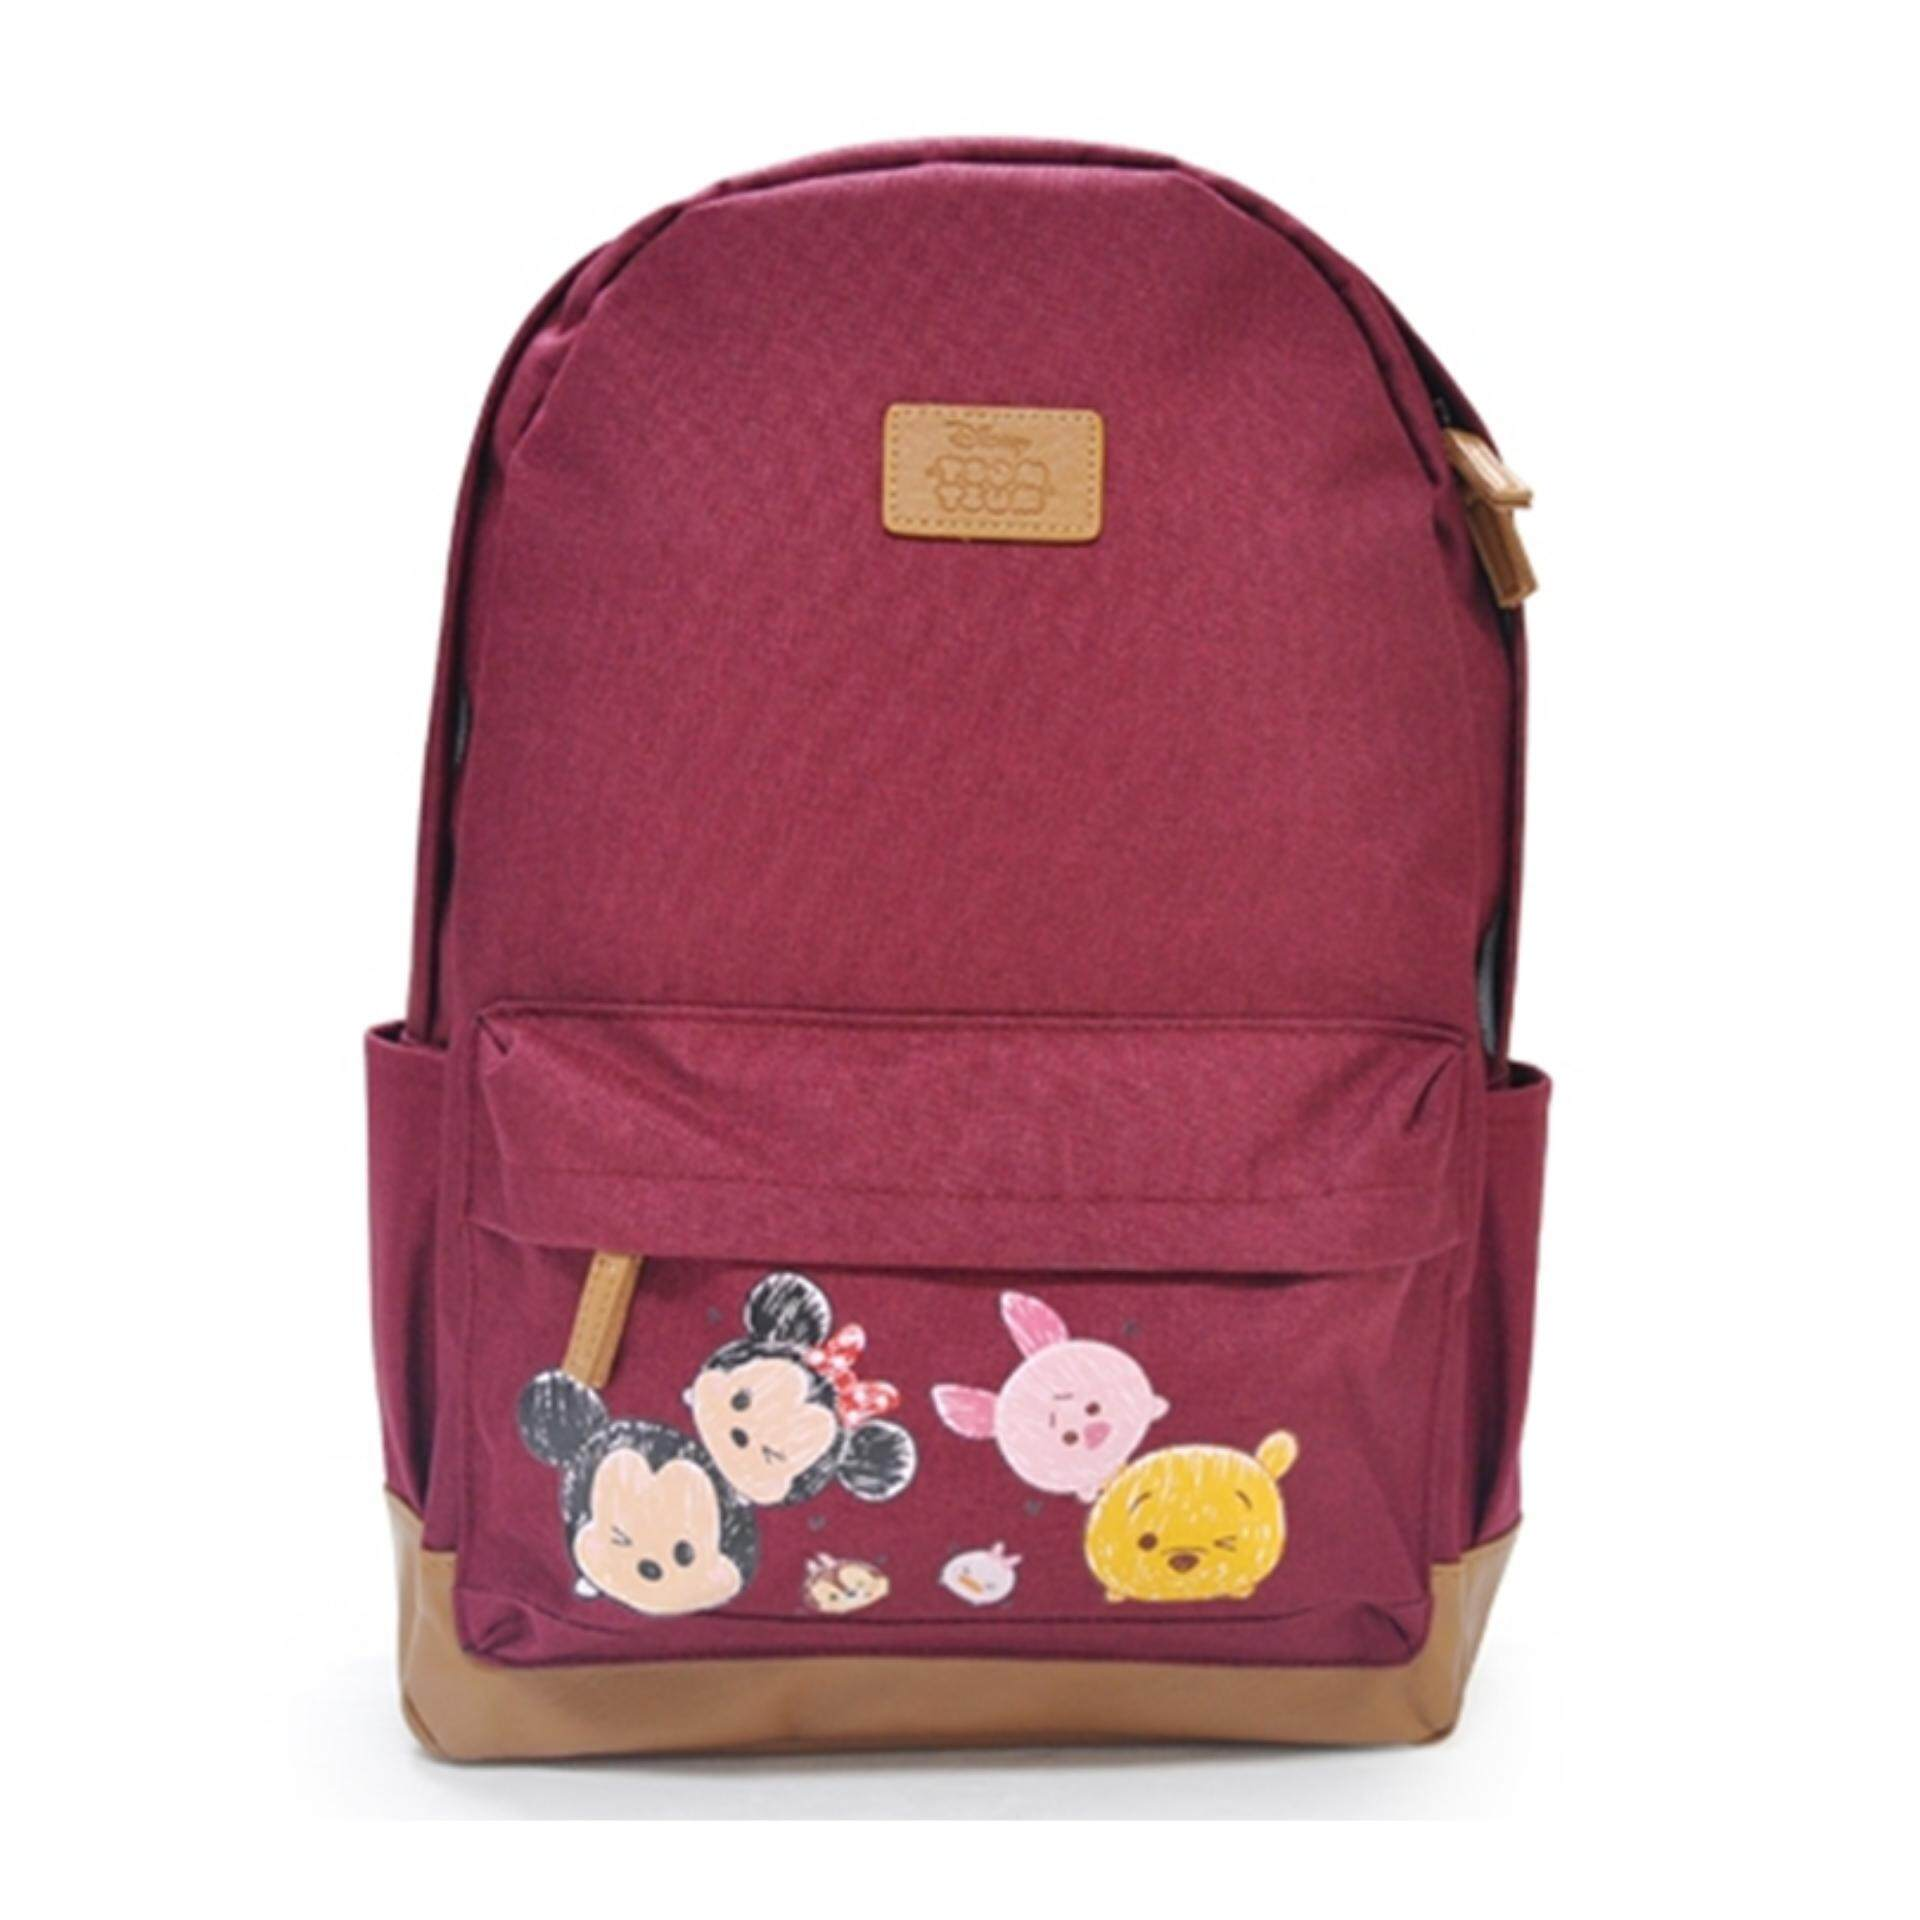 """Disney Tsum Tsum Backpack 16"""" Inches - Mickey Red Colour"""